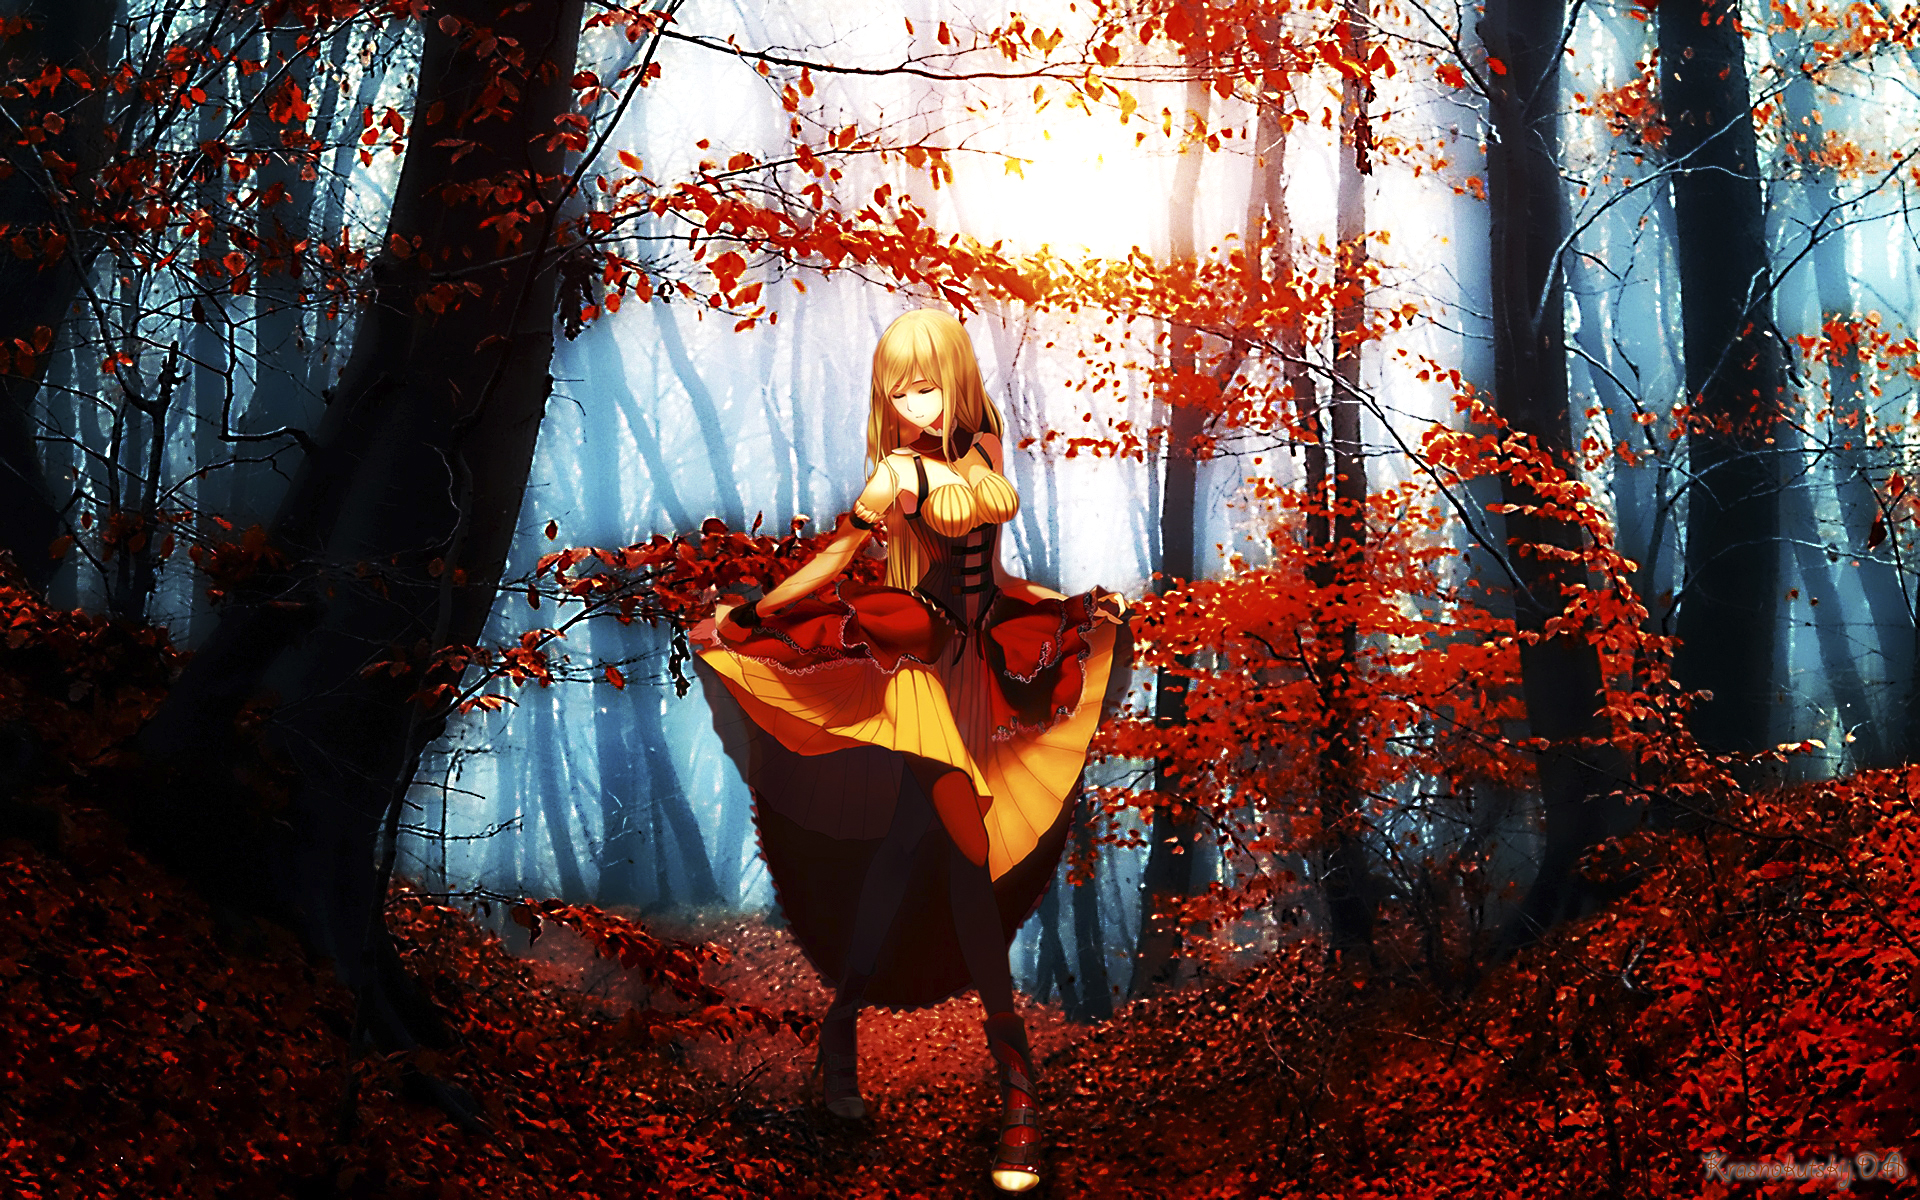 Cg Digital Art Artistic Paintings Airbrushing Anime Fantasy Women Females Girls Nature Trees Forests Landscapes Wallpaper